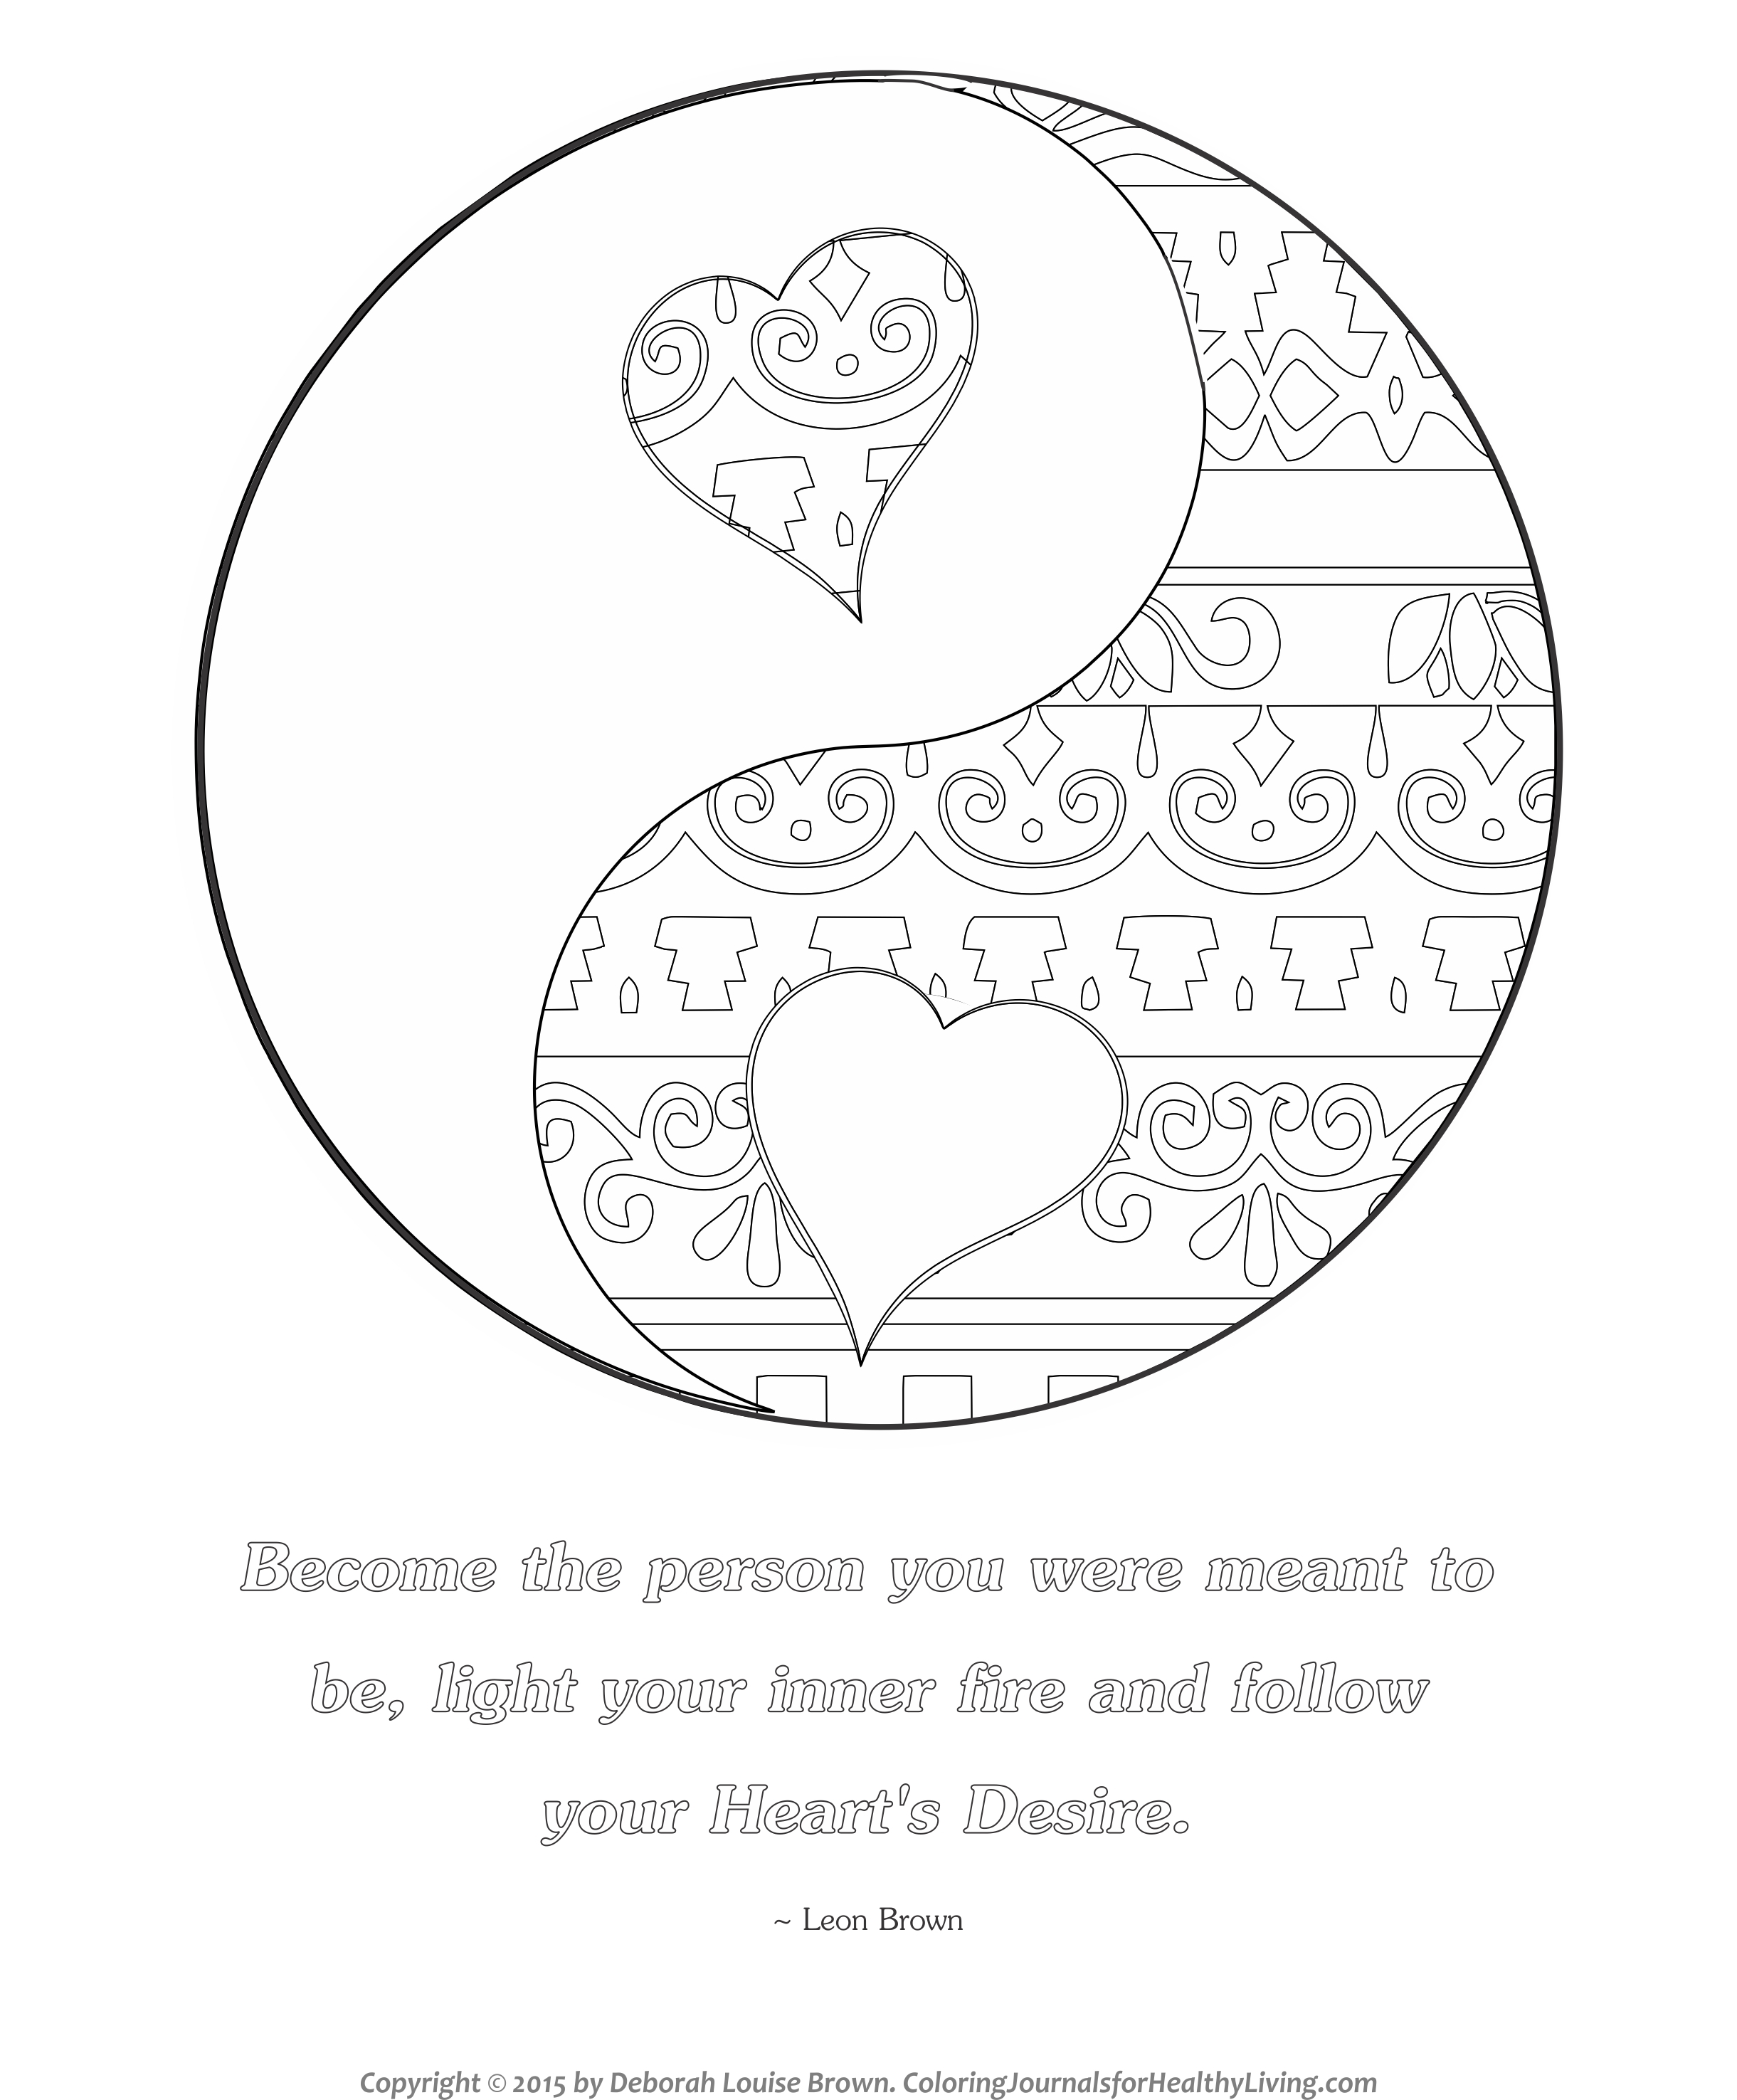 yin yang coloring pages - yin yang boho coloring book sketch templates